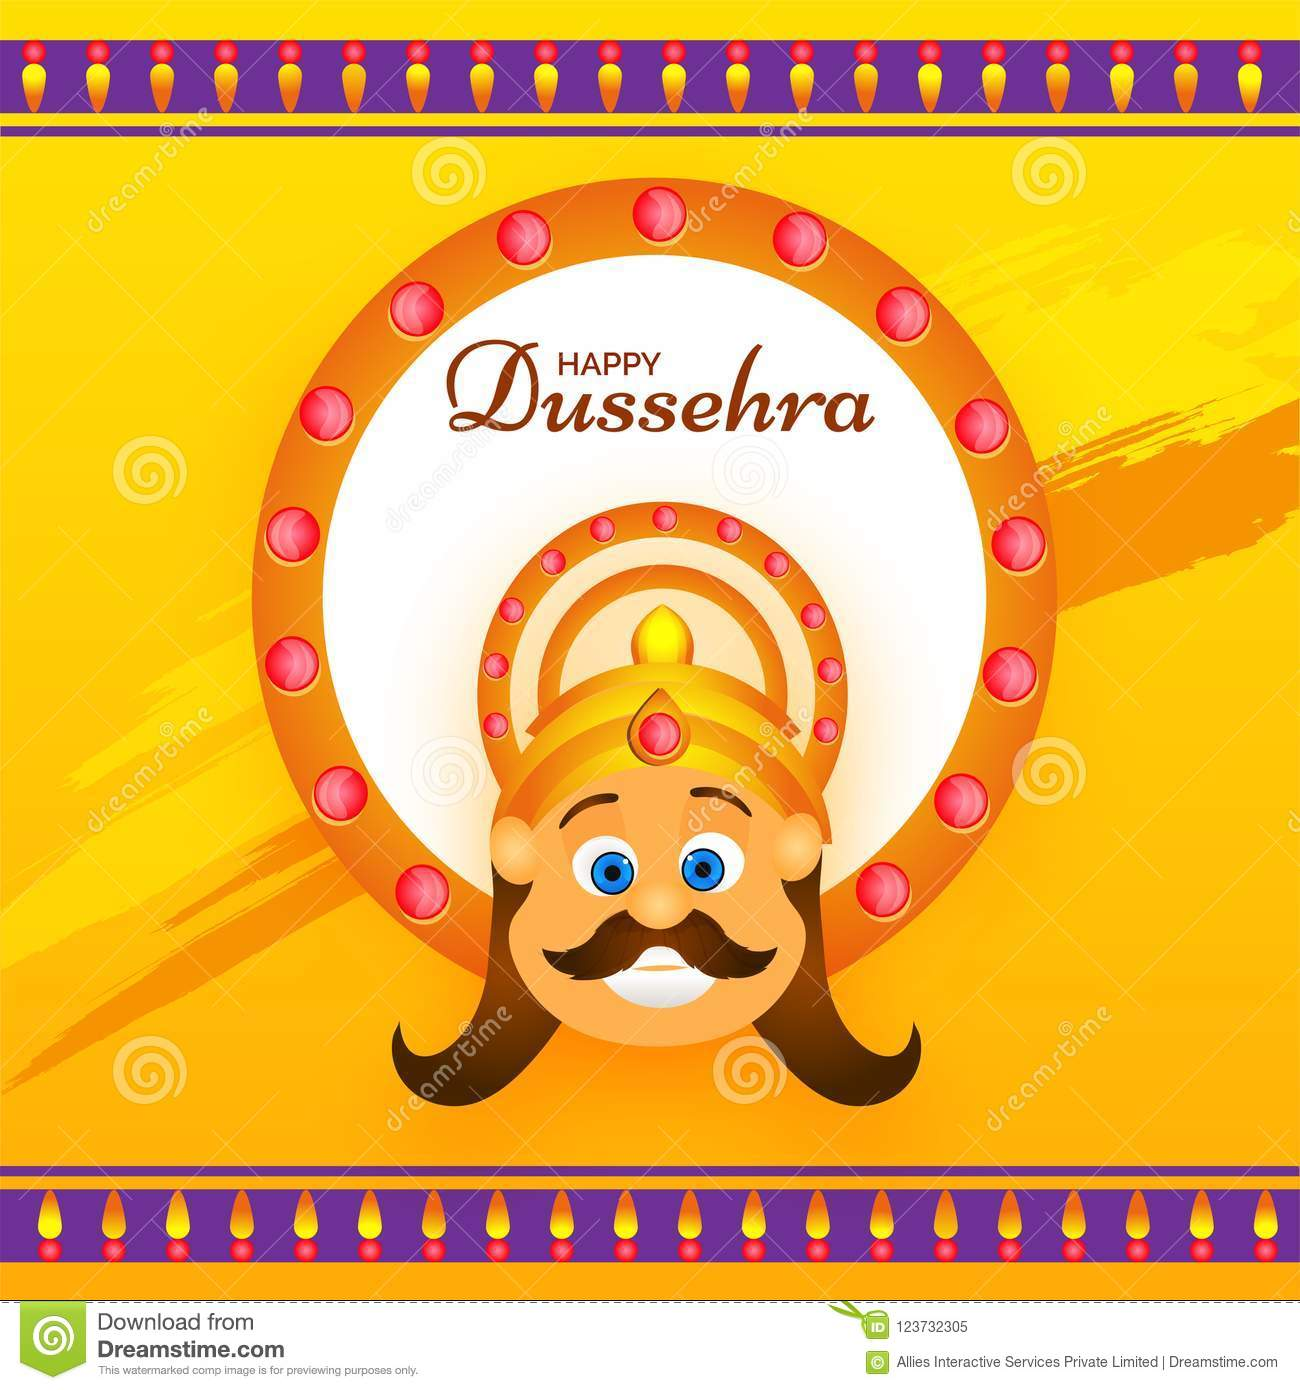 Happy dussehra greeting card design with illustration of demon r download happy dussehra greeting card design with illustration of demon r stock illustration illustration of m4hsunfo